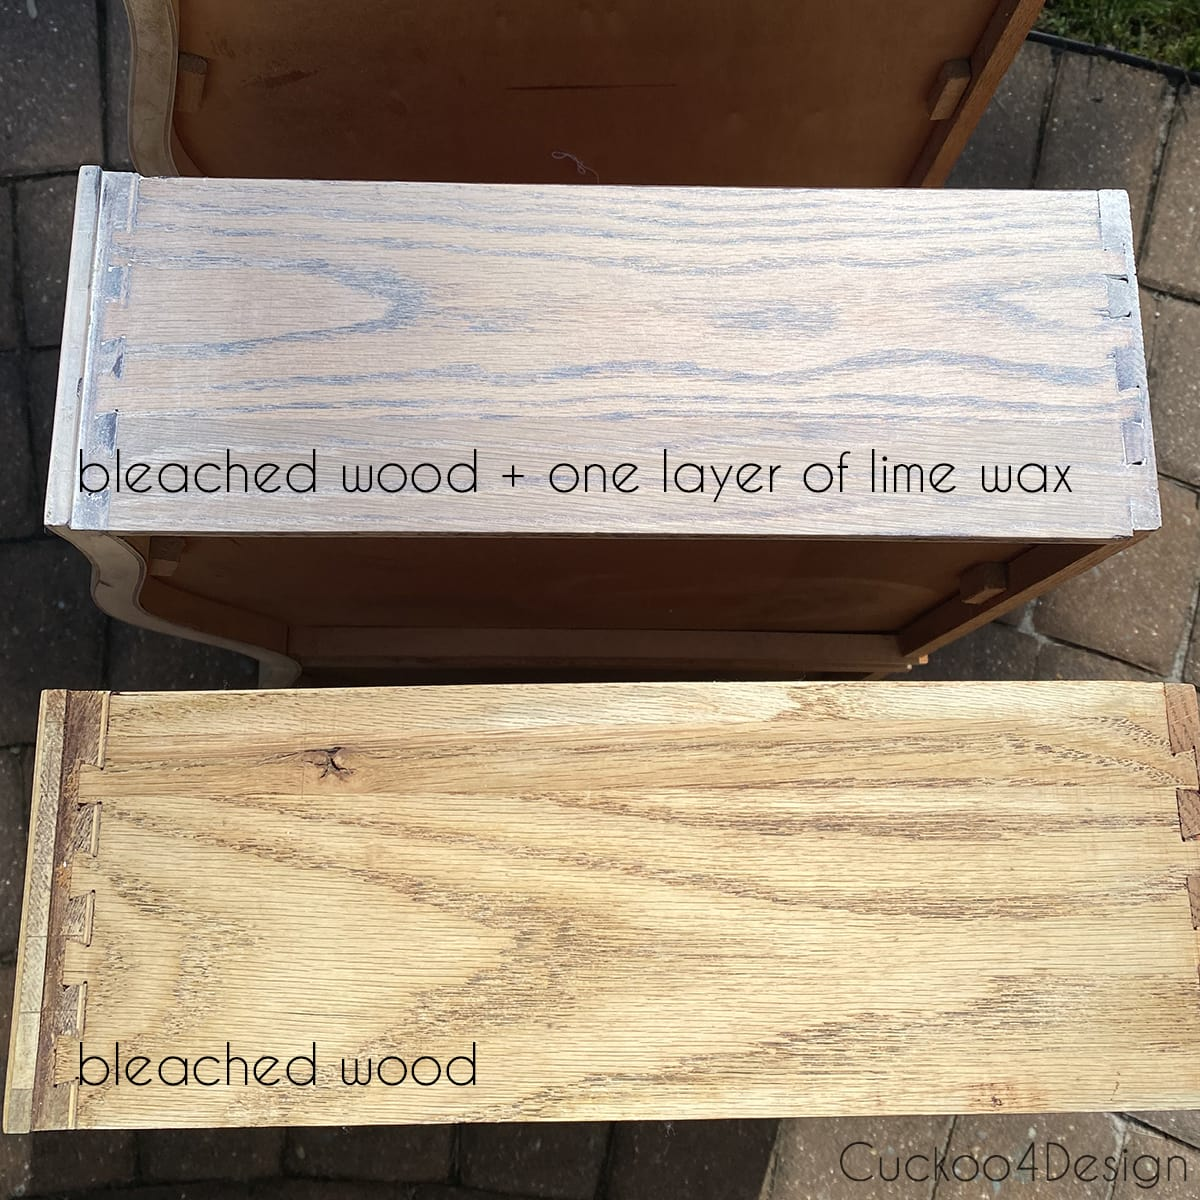 side drawer view of the difference between bleach only and an added coat of lime wax